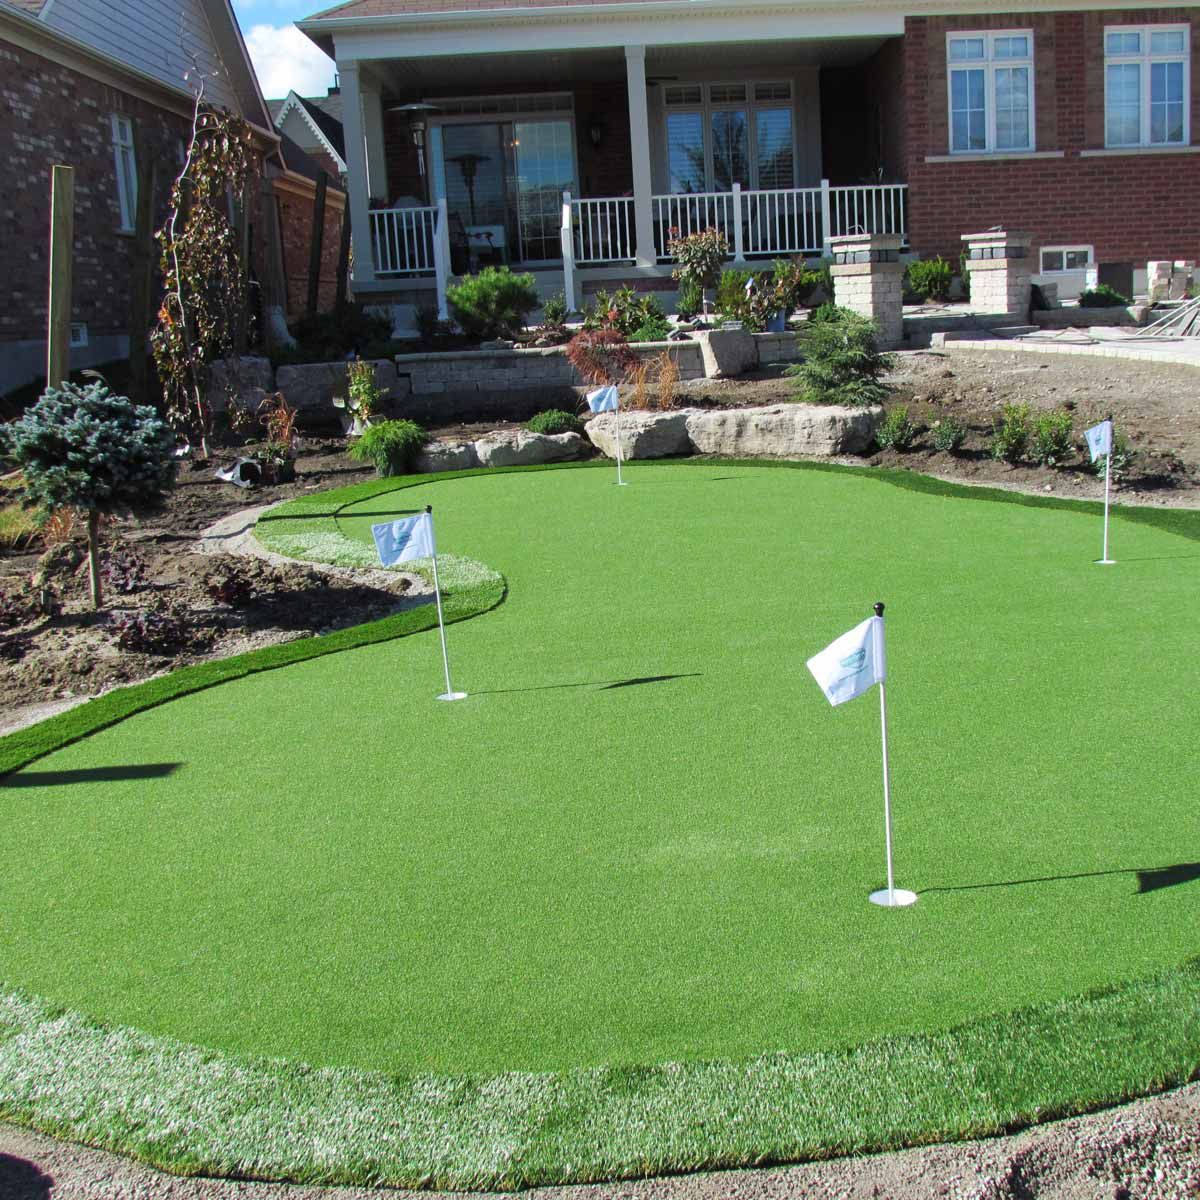 11 Some Of The Coolest Concepts Of How To Upgrade How Much Does It Cost To Landscape A Backyard Green Backyard Backyard Putting Green Backyard